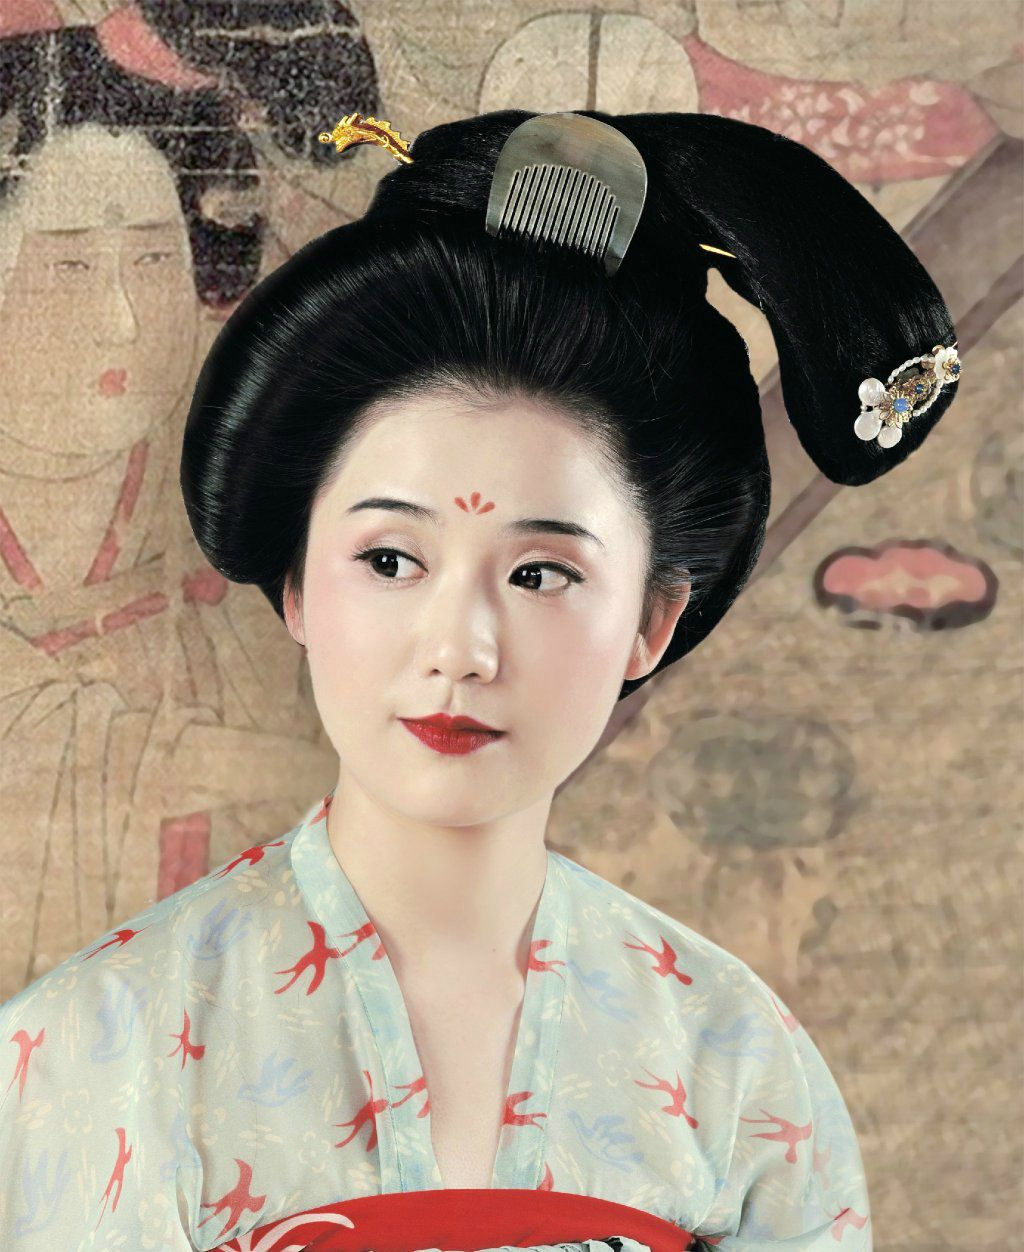 hanfugallery: traditional chinese fashion in tang dynasty style by